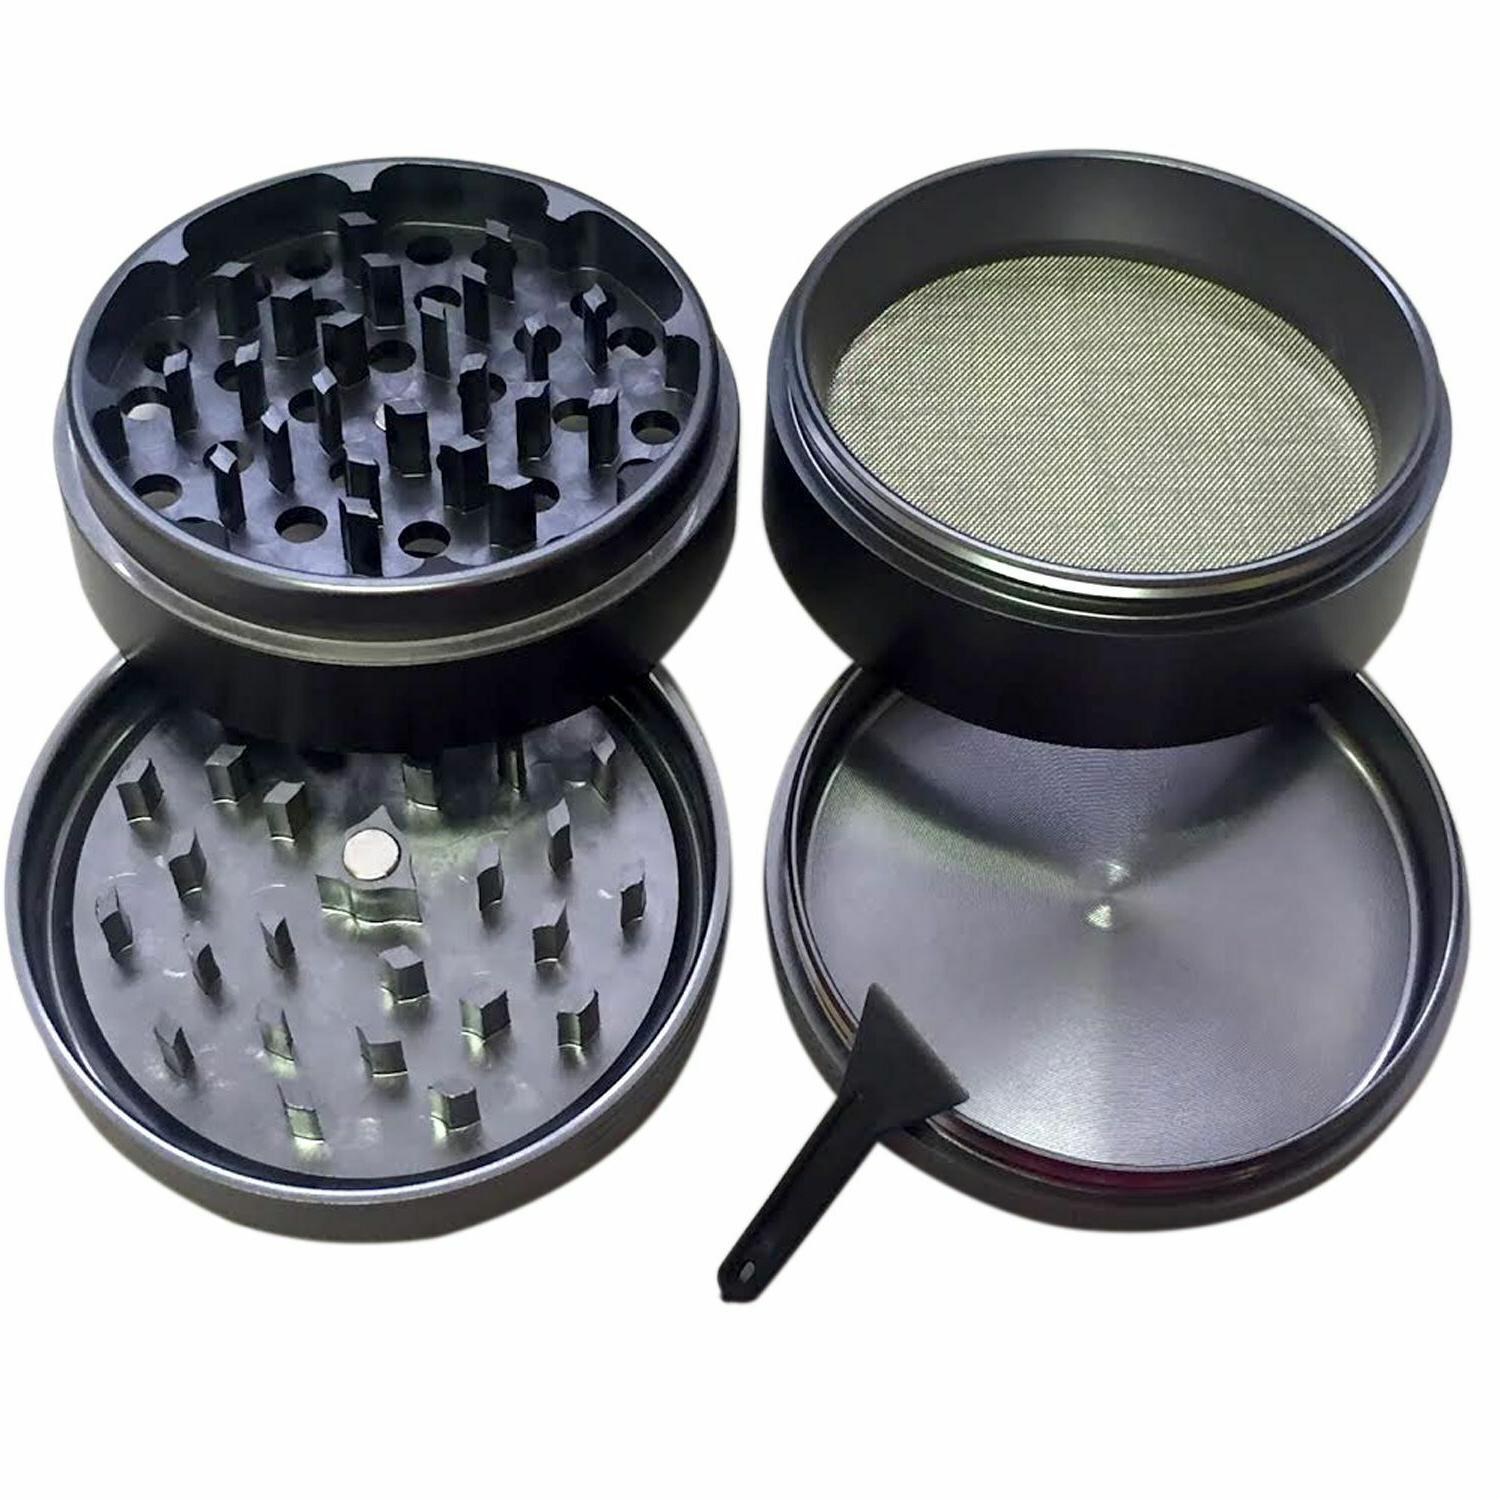 4 Inch Herb Grinder Spice With Scoop